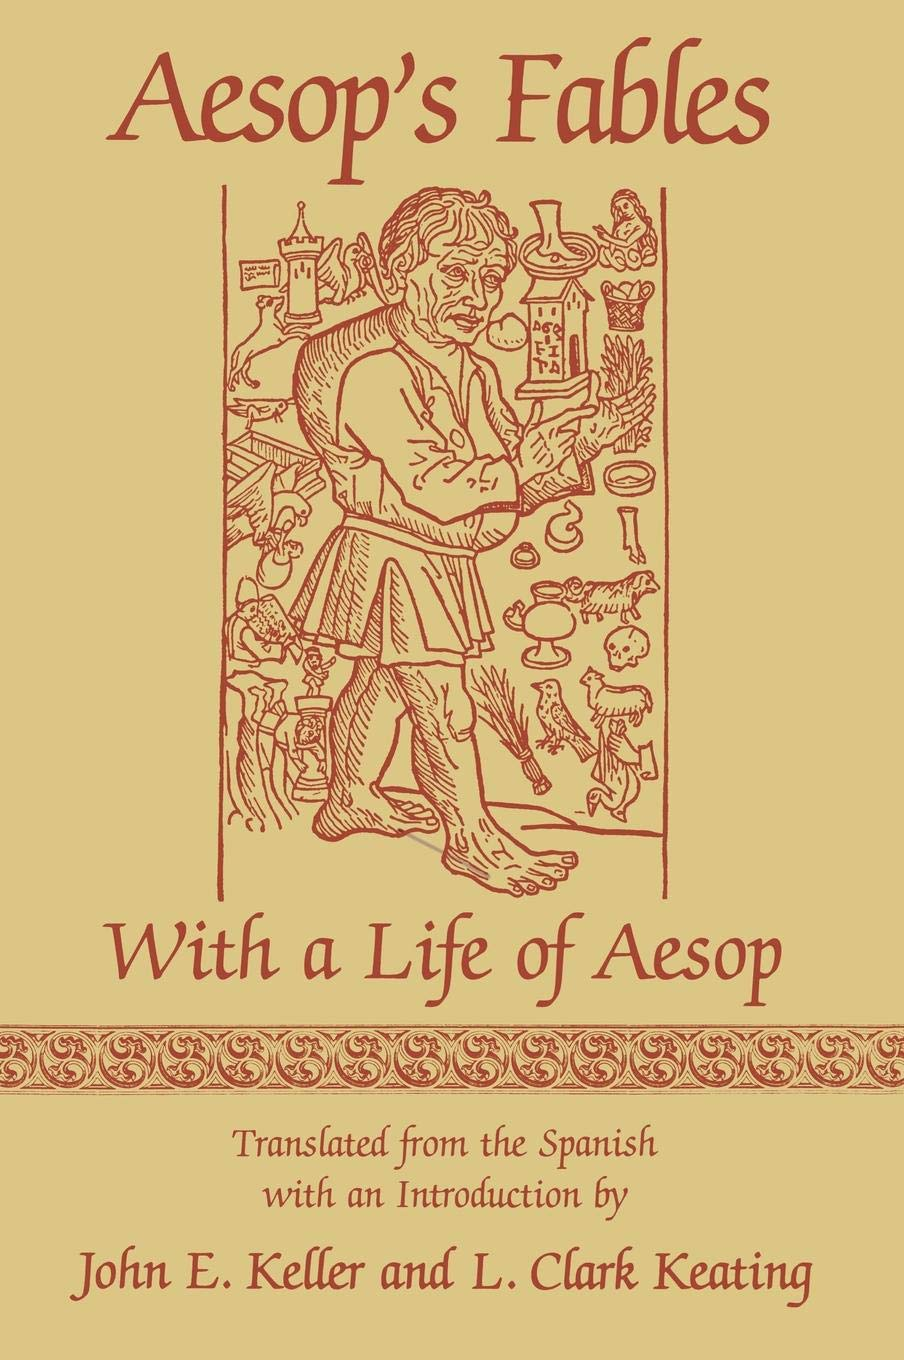 Aesop's Fables: With a Life of Aesop (Studies in Romance Languages) by Brand: The University Press of Kentucky